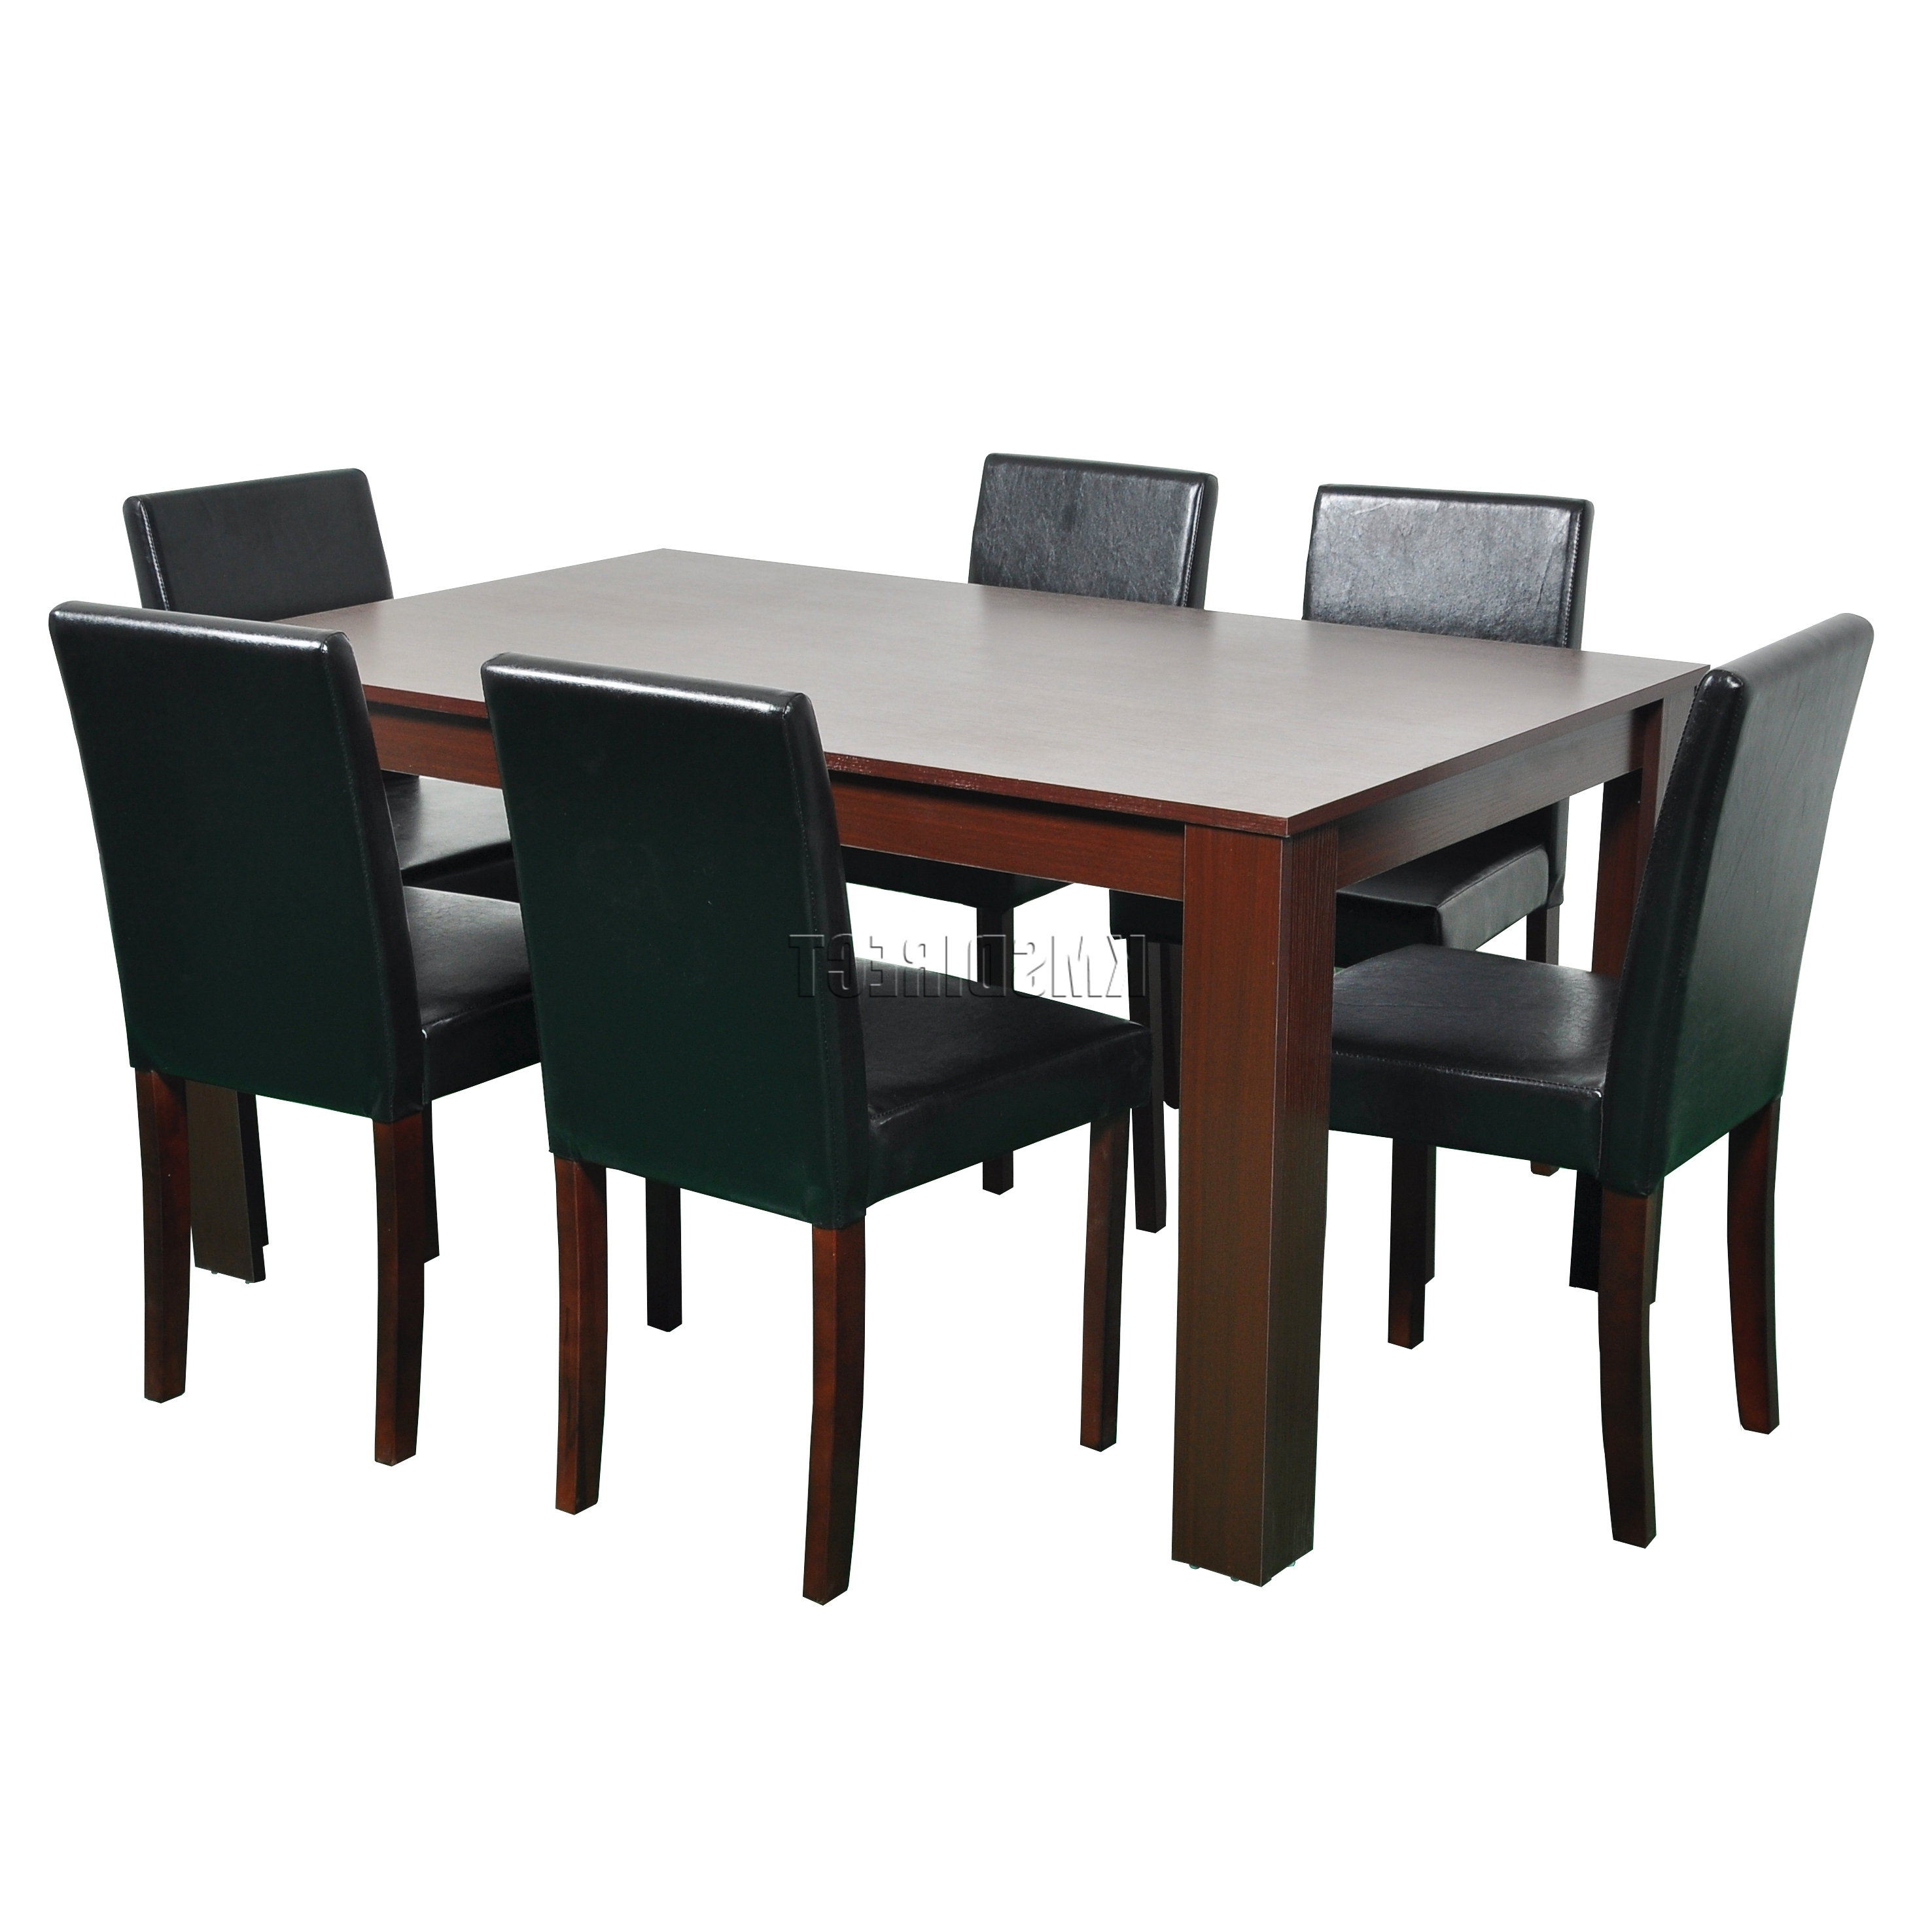 Black Gloss Dining Tables And 6 Chairs Throughout Preferred 7Pieces Black High Gloss Dining Table Set And 6 Faux Leather Dinning (View 3 of 25)